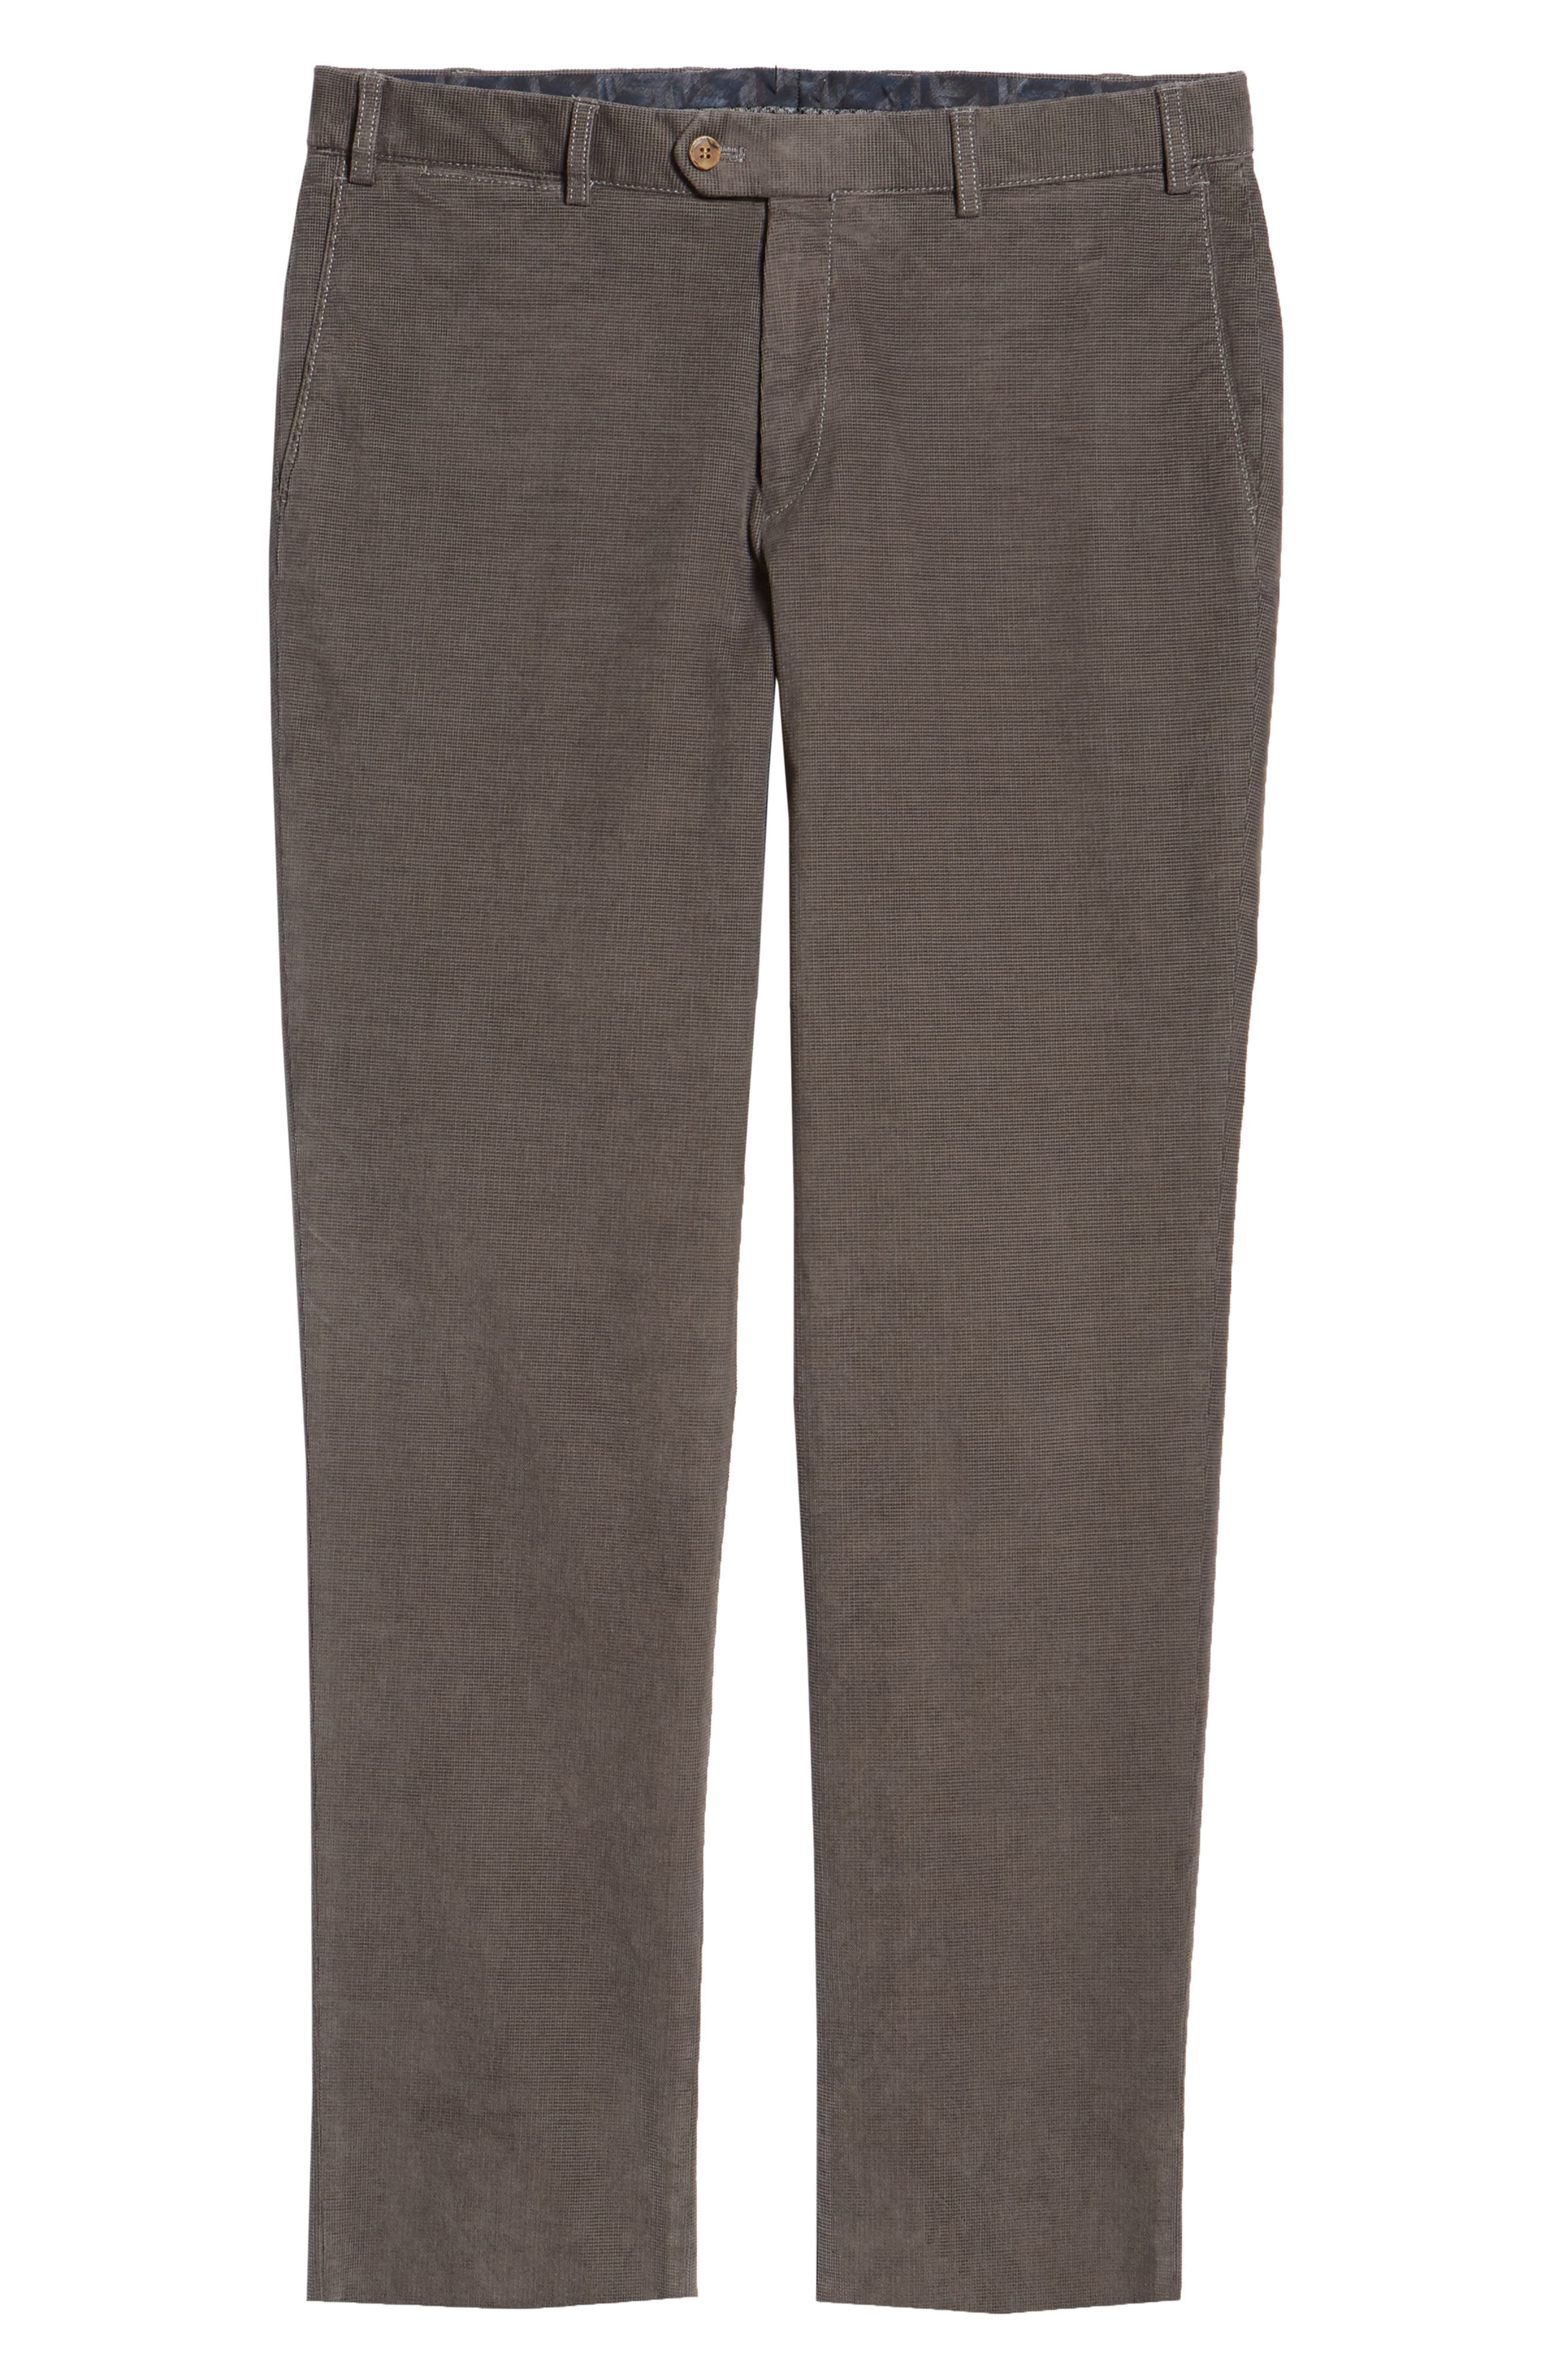 Pero Trim Fit Stretch Flat Front Trousers,                             Alternate thumbnail 6, color,                             TAUPE